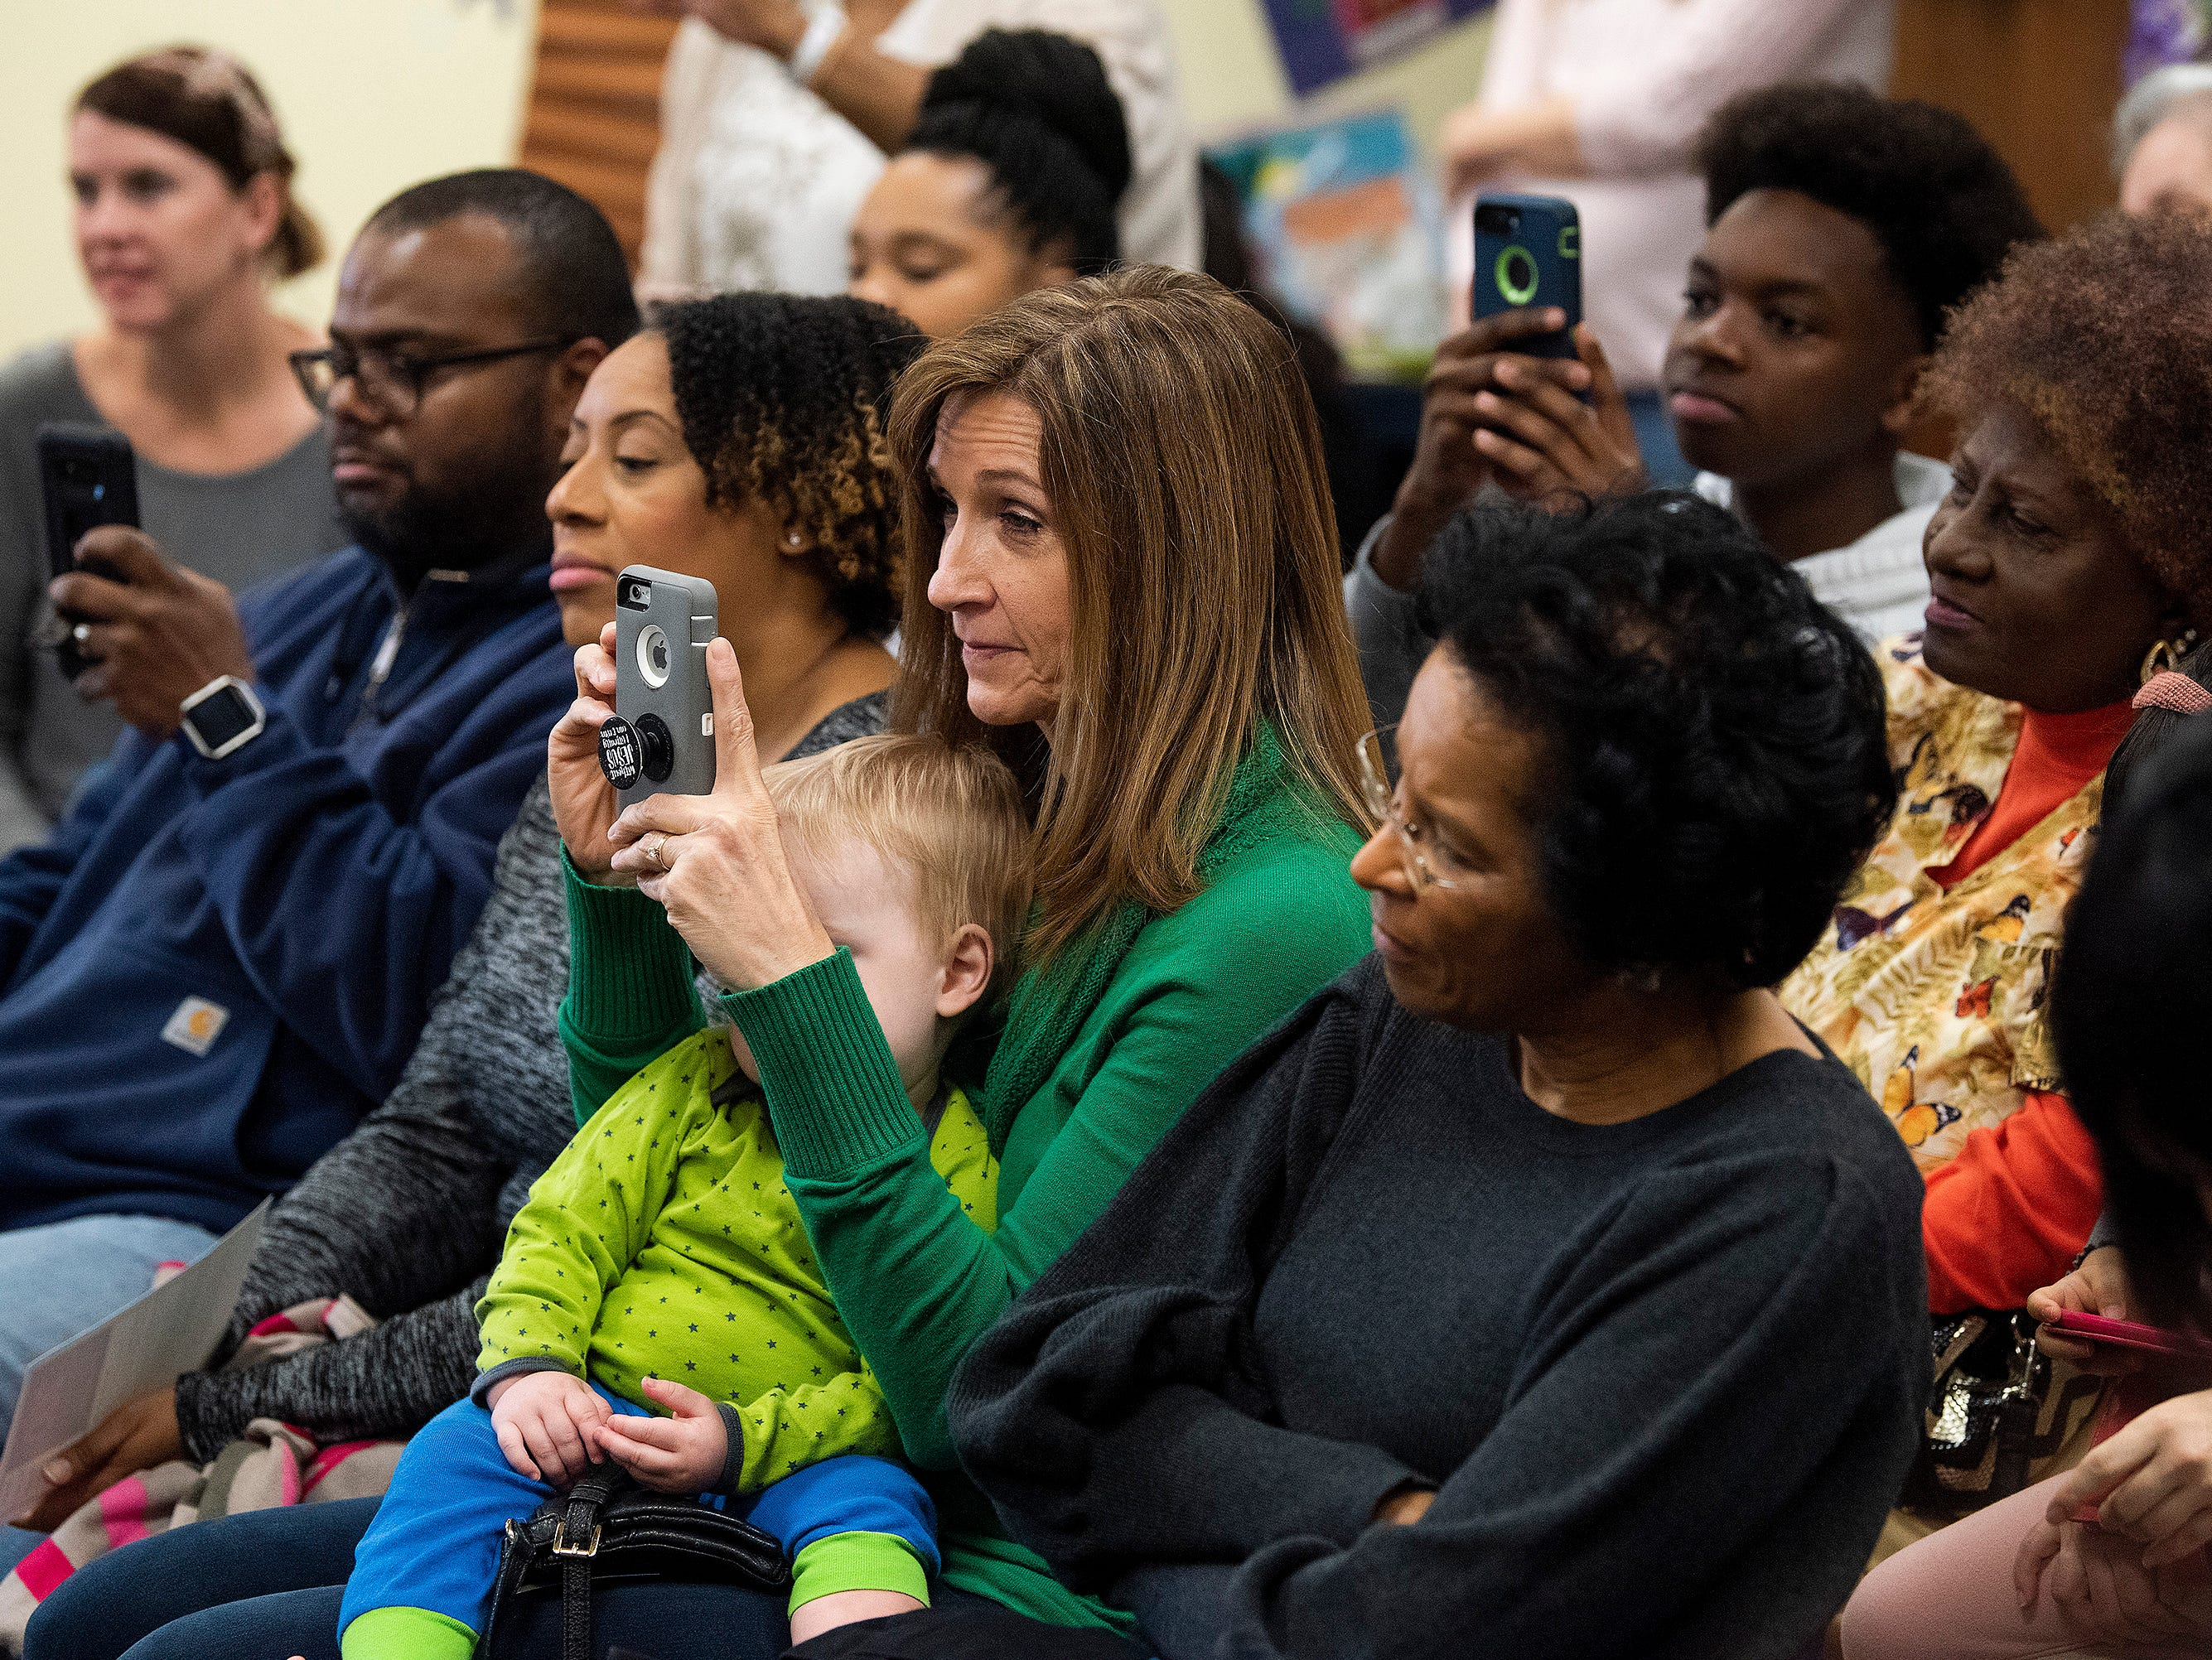 Parents watch as students give presentations on Alabama while celebrating the Alabama Bicentennial at Holy Cross Episcopal School in Montgomery, Ala., on Friday February 15, 2019.